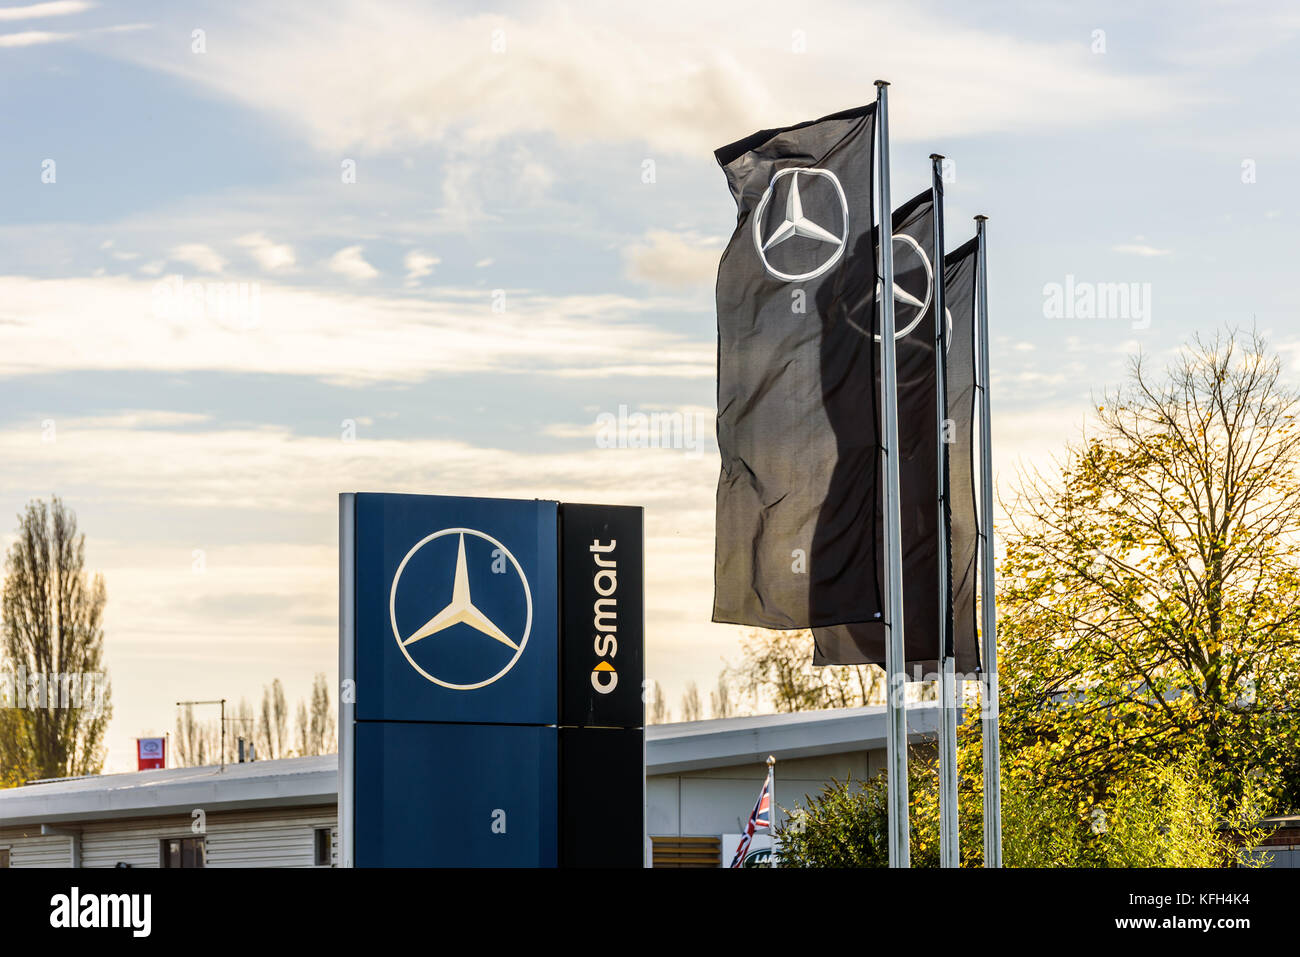 Northampton, UK   Oct 25, 2017: Day View Of Mercedes Benz Logo